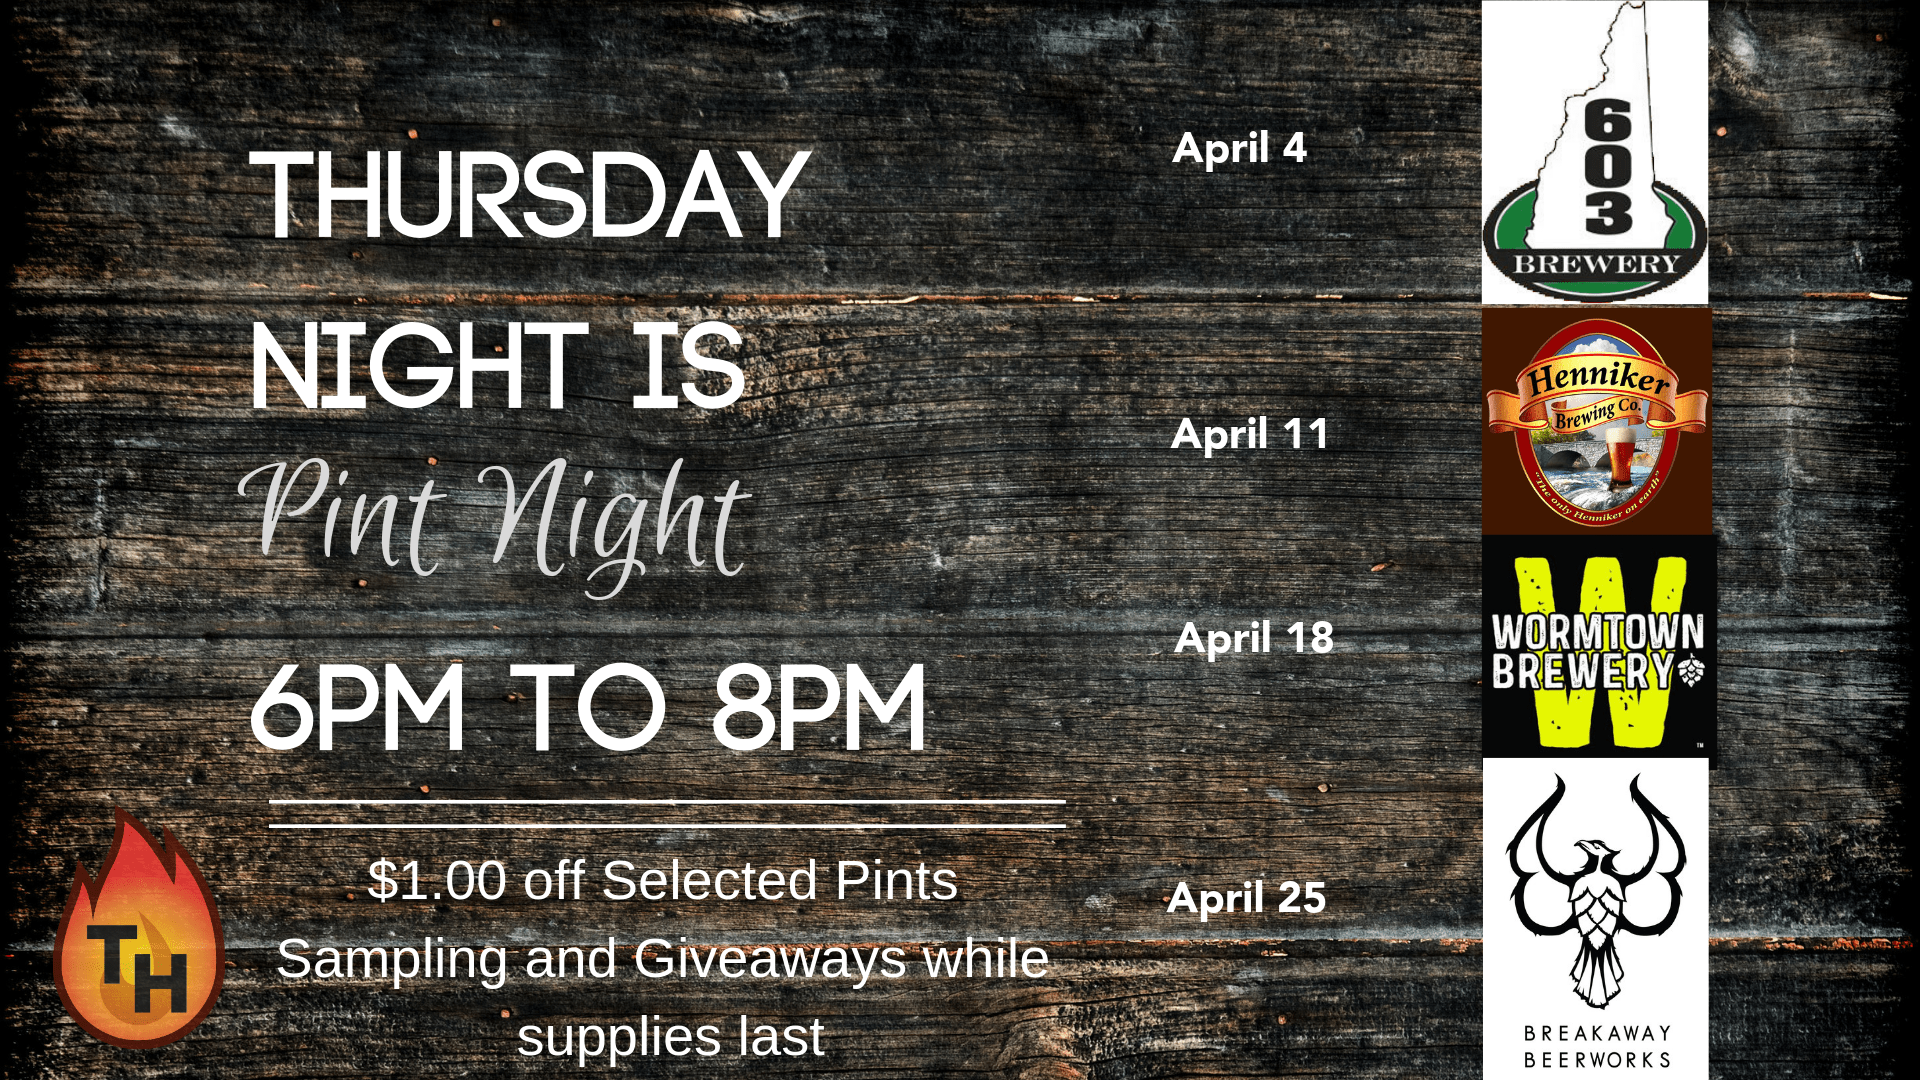 thursday night is pint night from 6 to 8pm